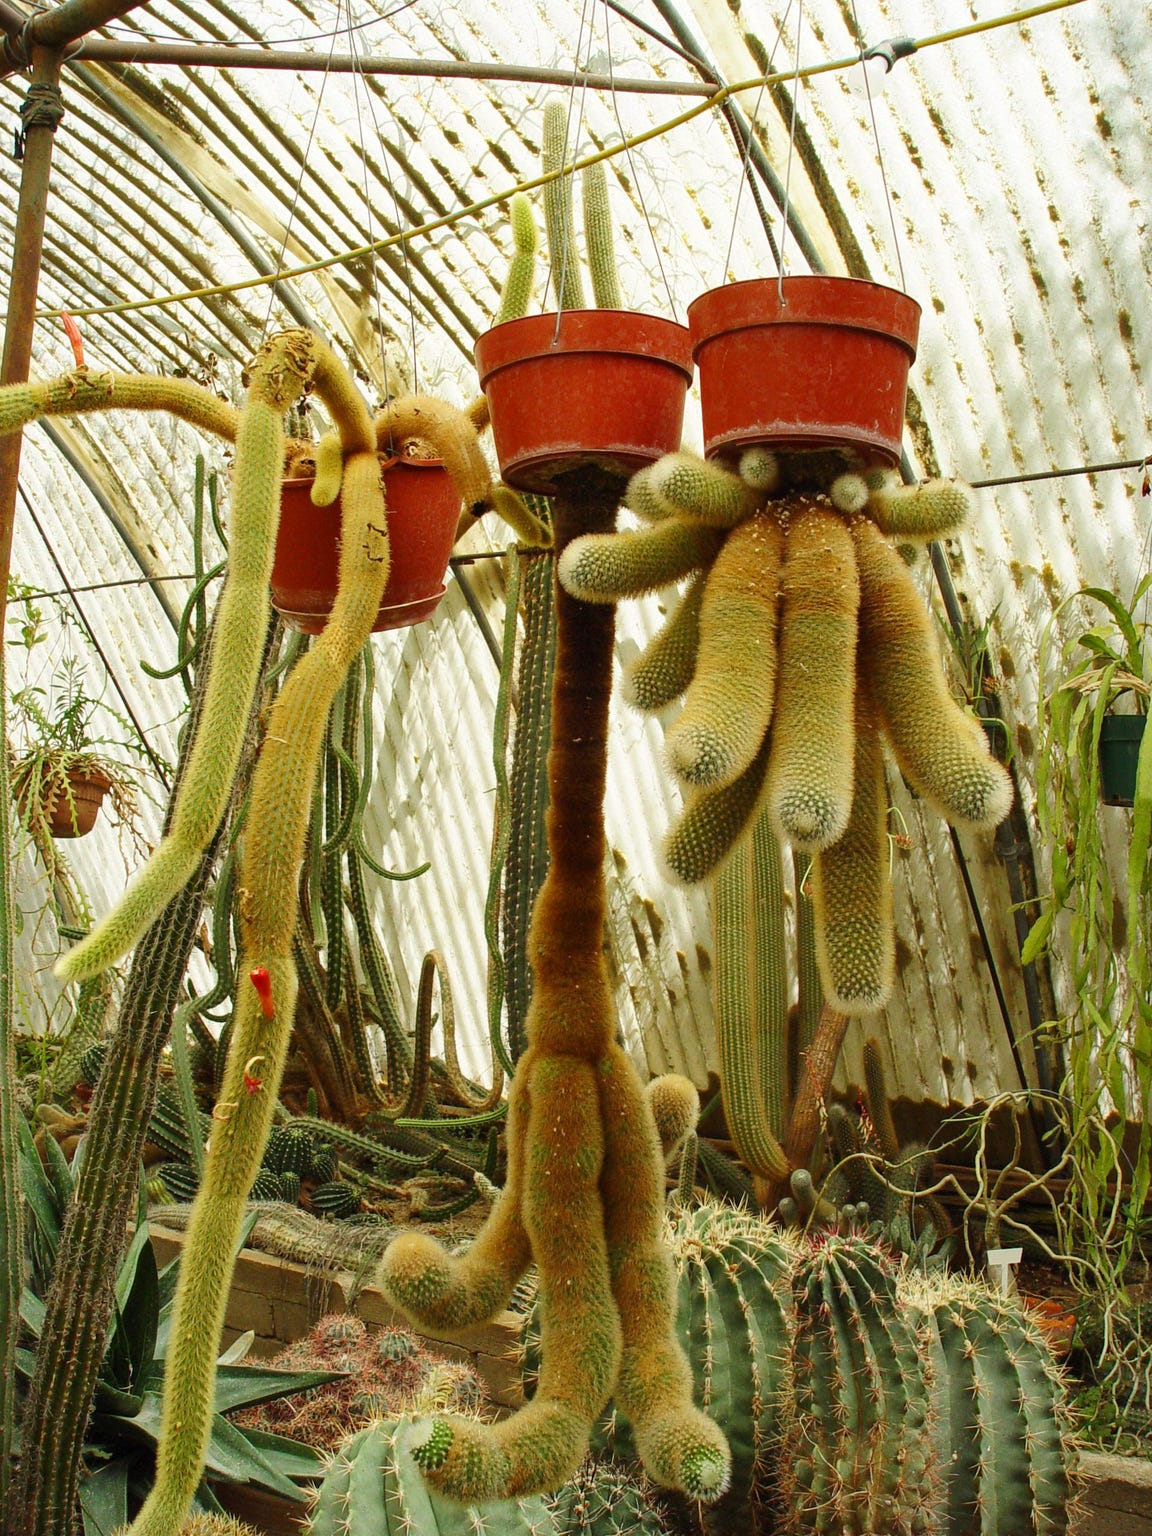 When much younger, Clark Moorten made the upside down cactus on the left that are decades old by the time it reaches this size.